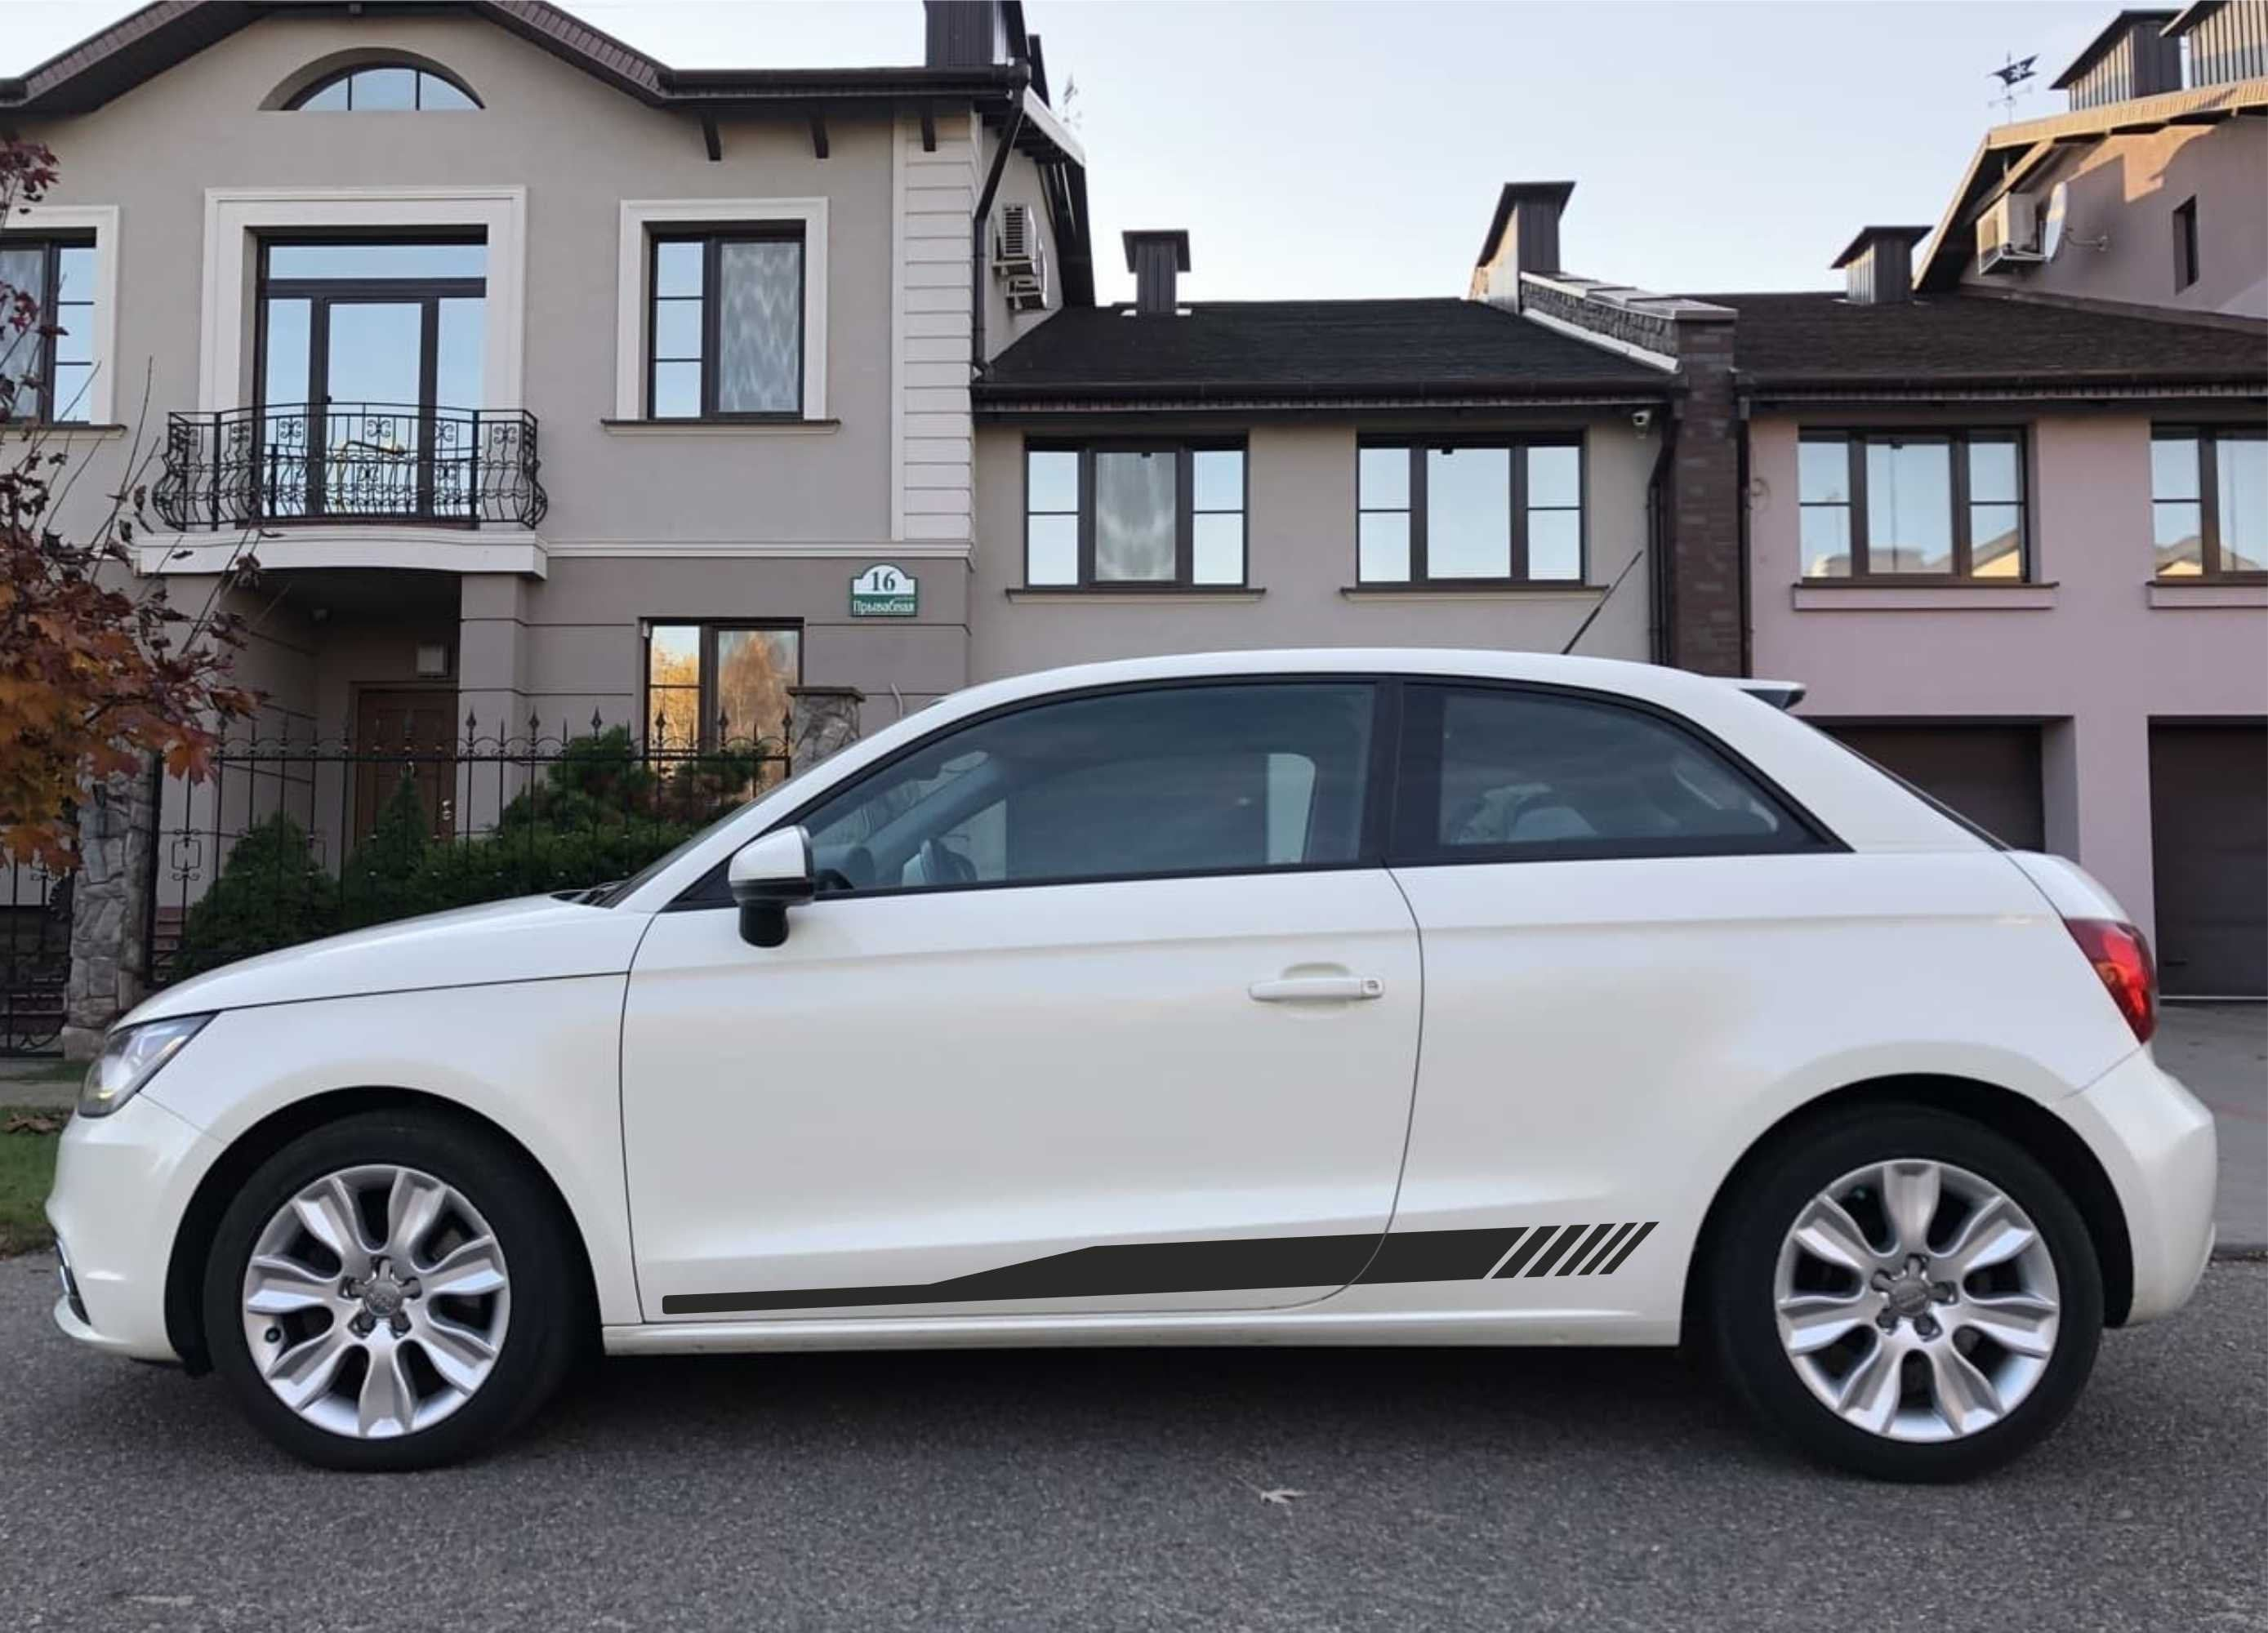 For Audi A1 Side Stripes Matt Or Glossy Decals Etsy In 2021 Audi A1 Car Stripes Cute Cars